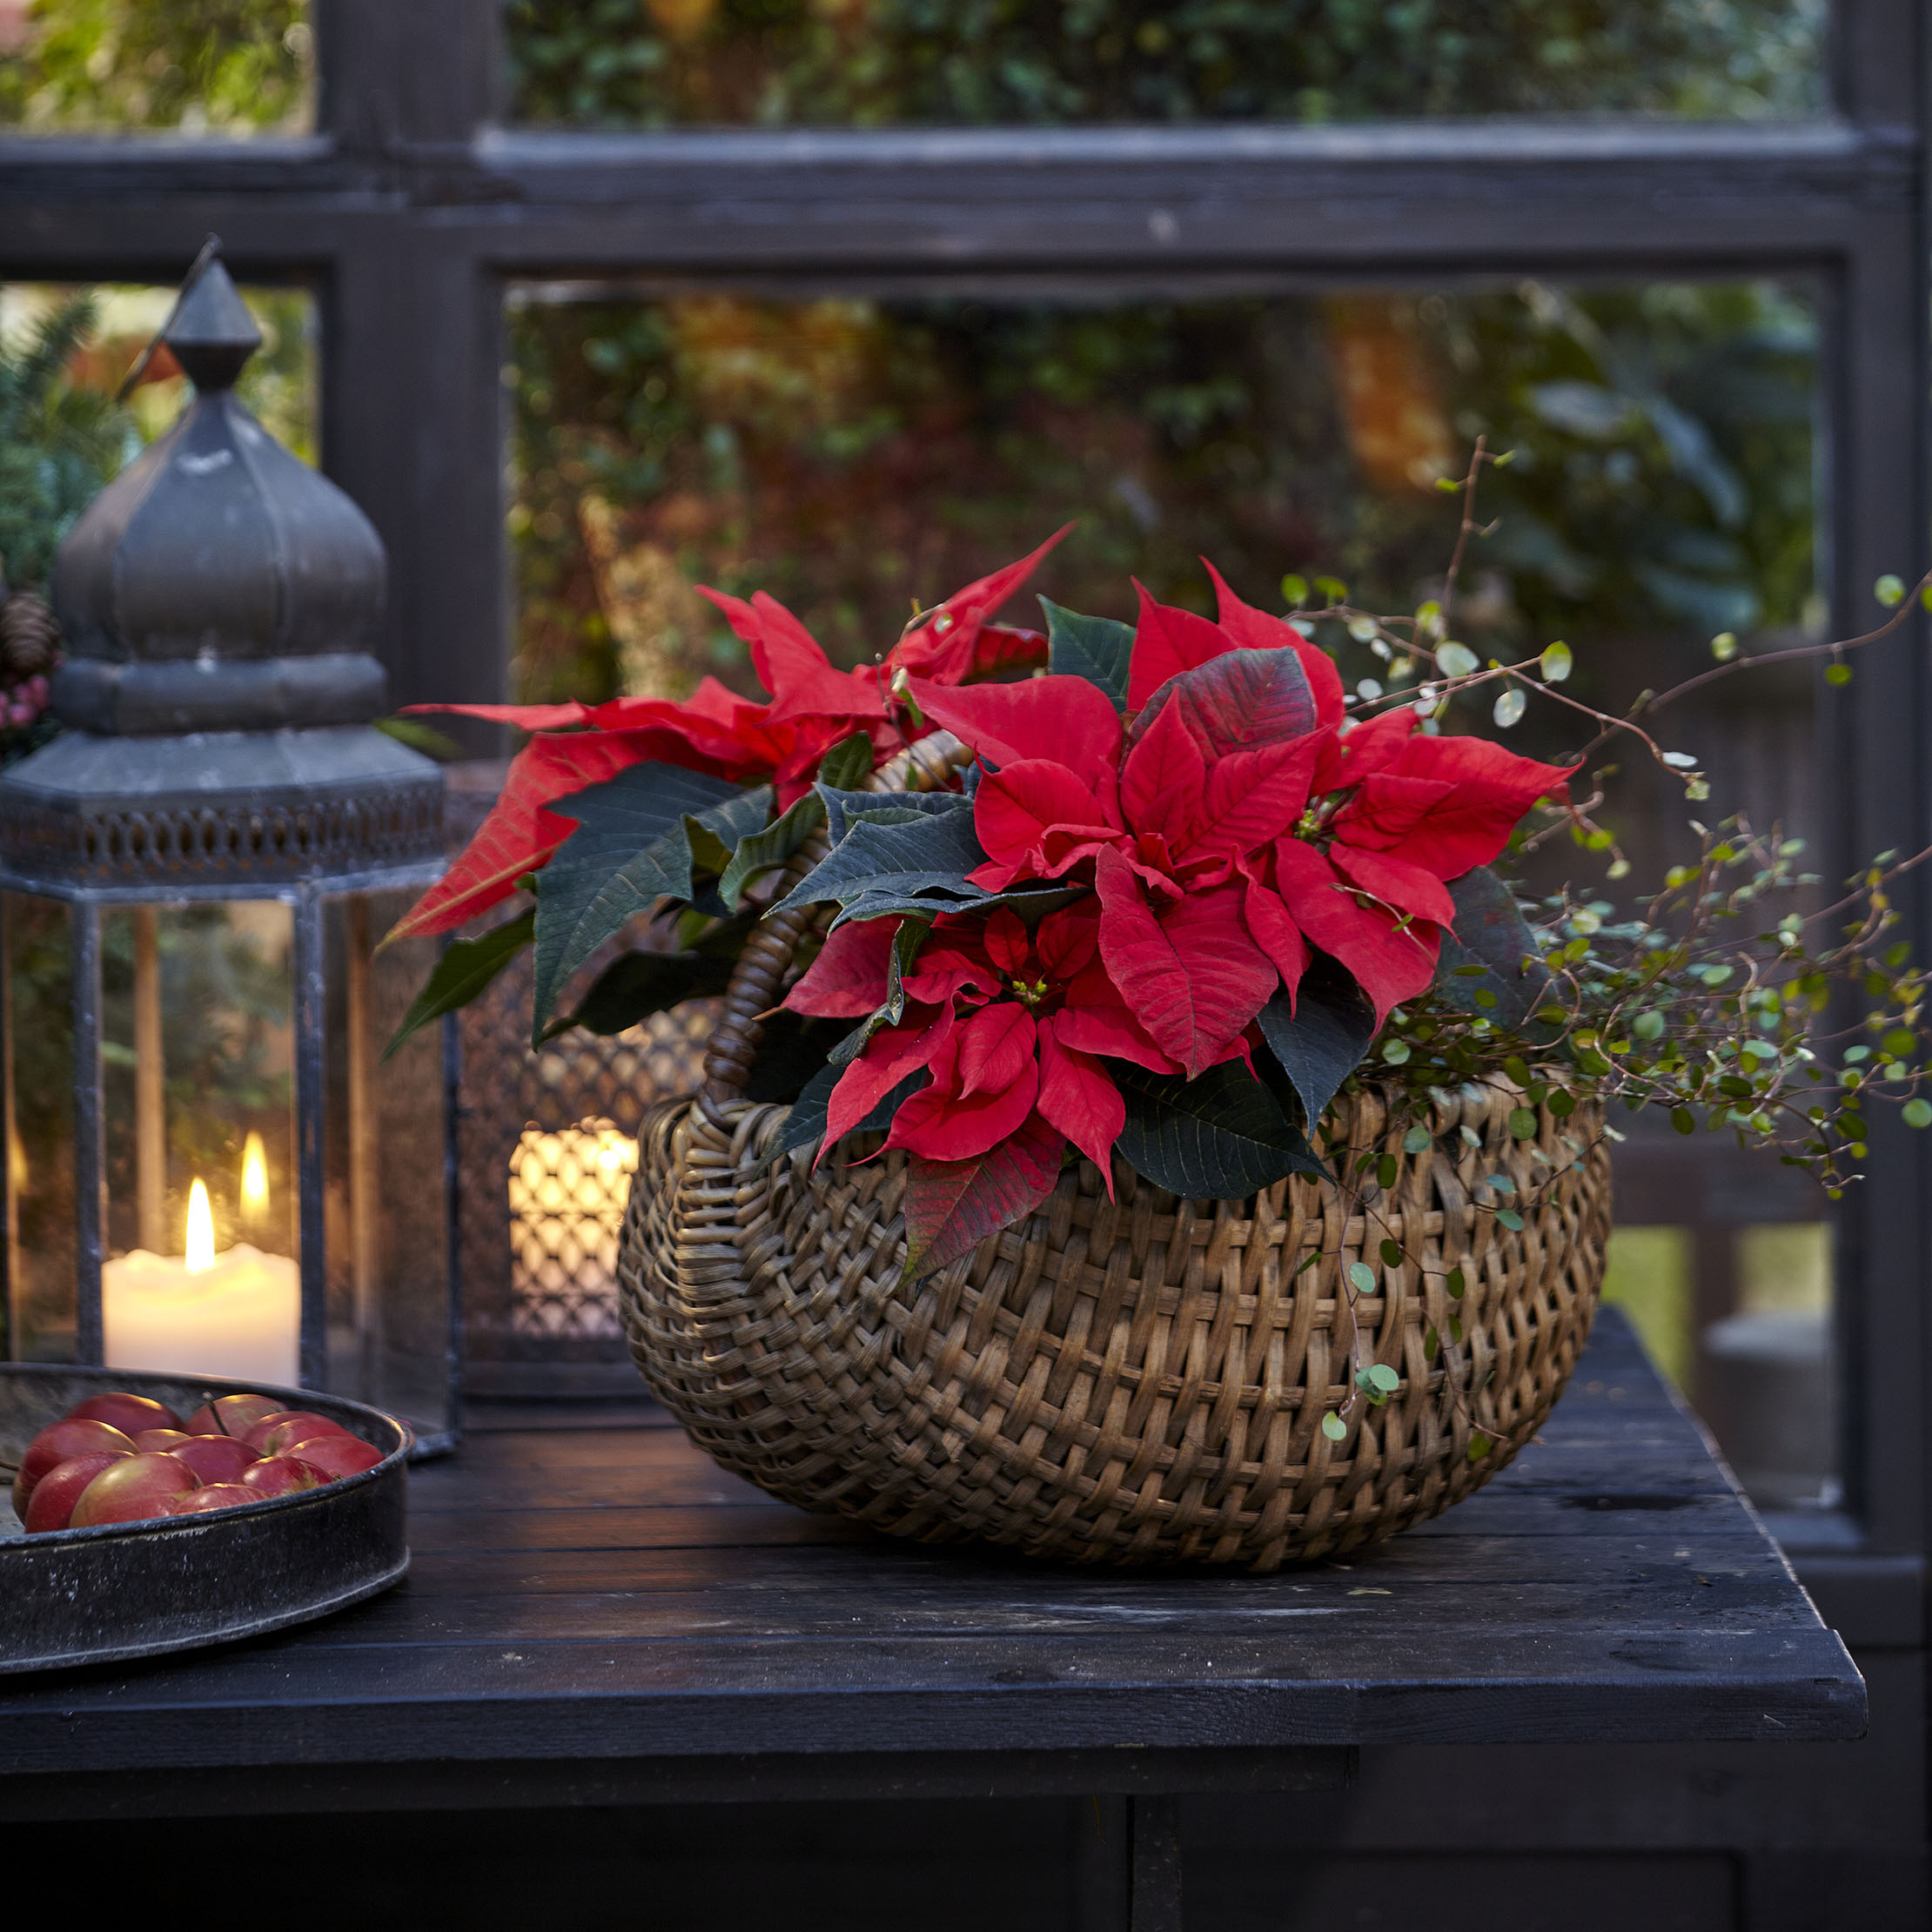 Curious Questions Why Do We Have Poinsettias At Christmas And Why Did It Get The Name Excrement Flower Country Life